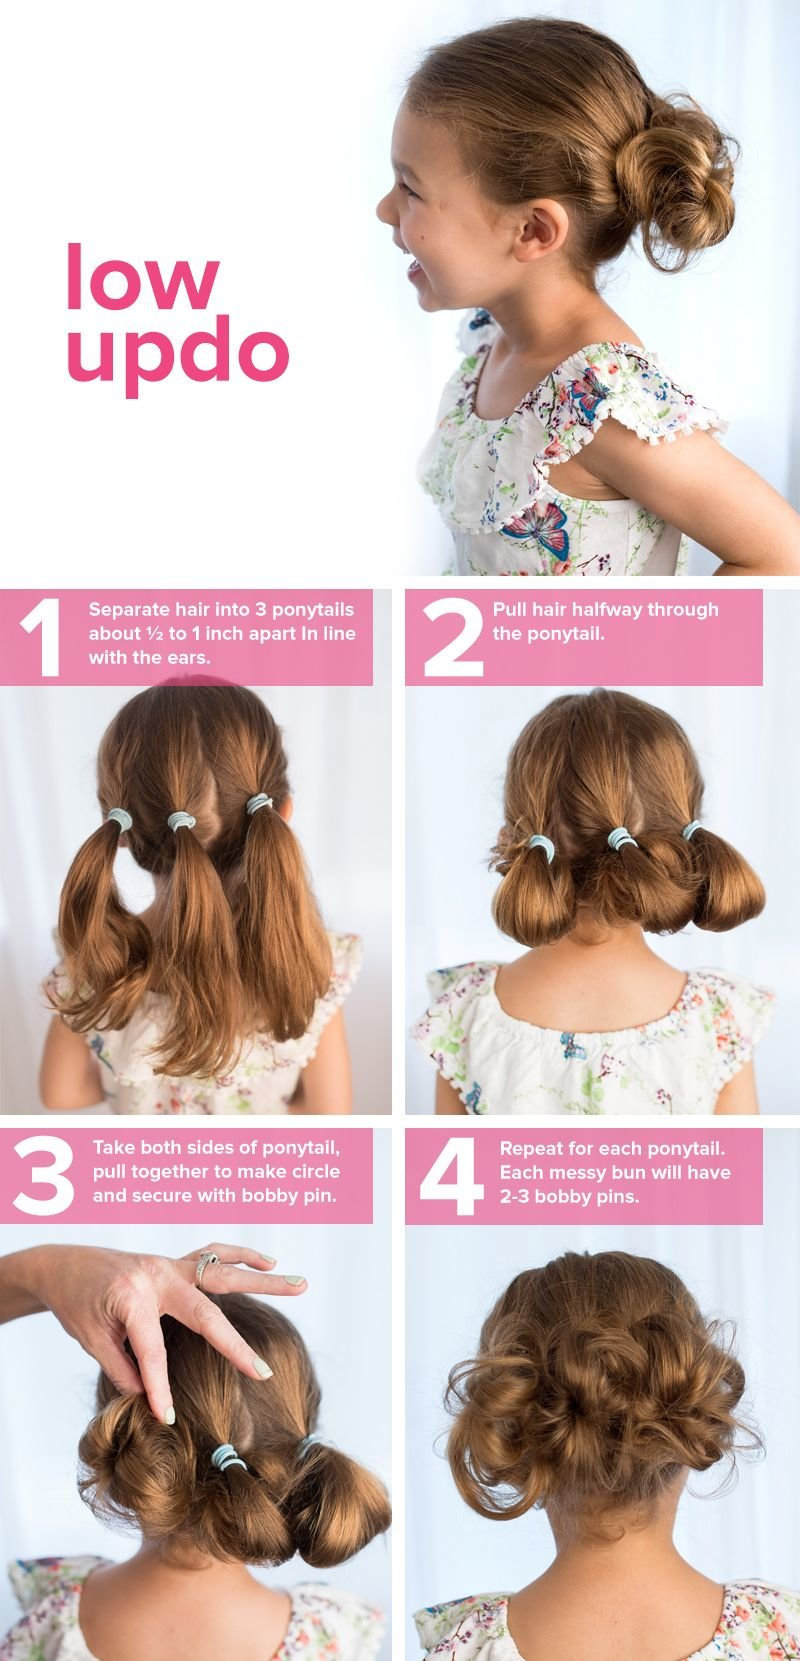 Free 5 Fast Easy Cute Hairstyles For Girls Low Updo Wallpaper